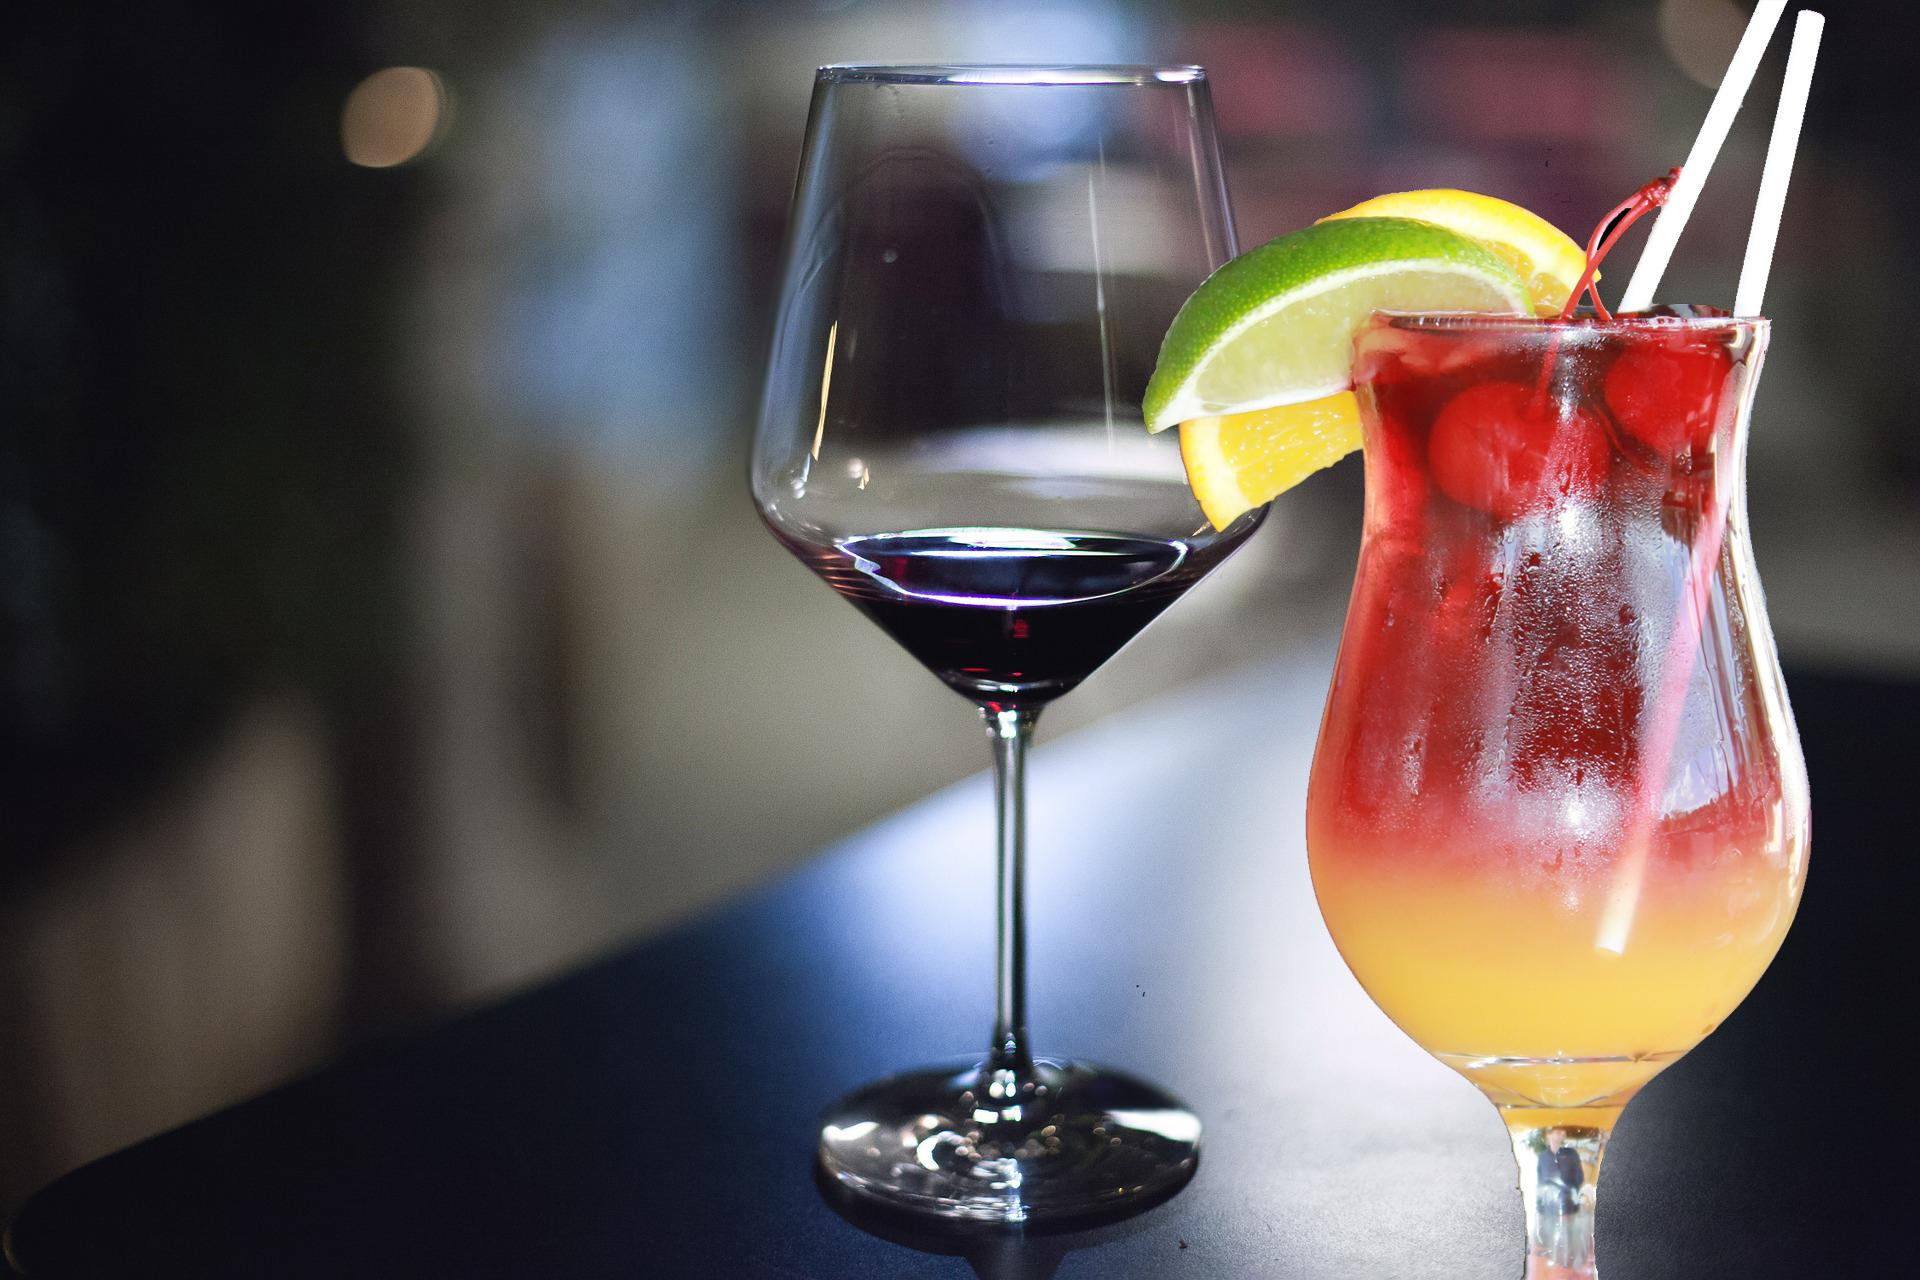 Dr. Suzanne Swan investigates gender differences in various frms of aggressive behavior, including a recent study on college students spiking drinks with drugs.